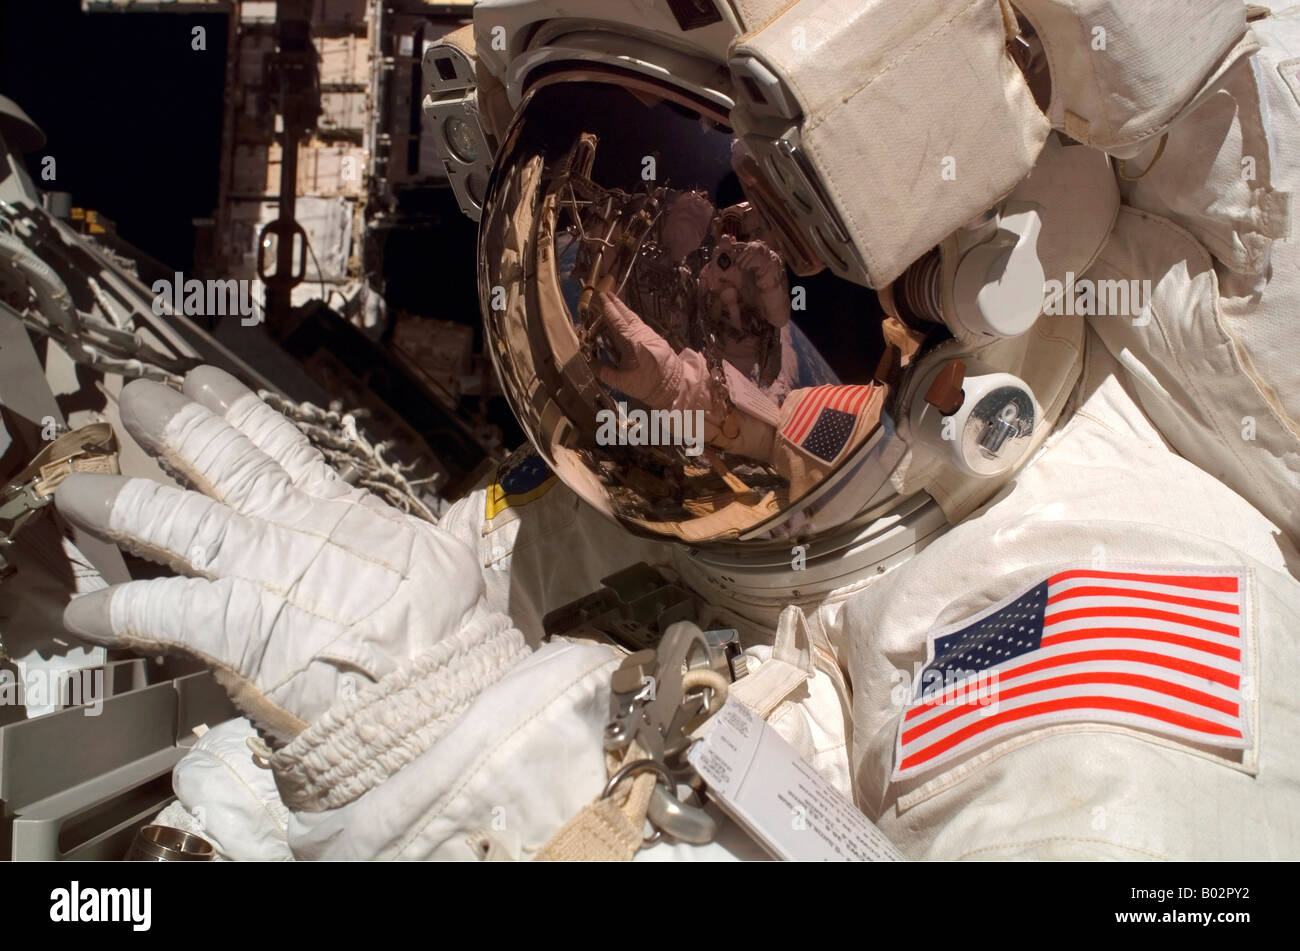 Close-up view of the helmet visor and spacesuit of an astronaut during a spacewalk. - Stock Image